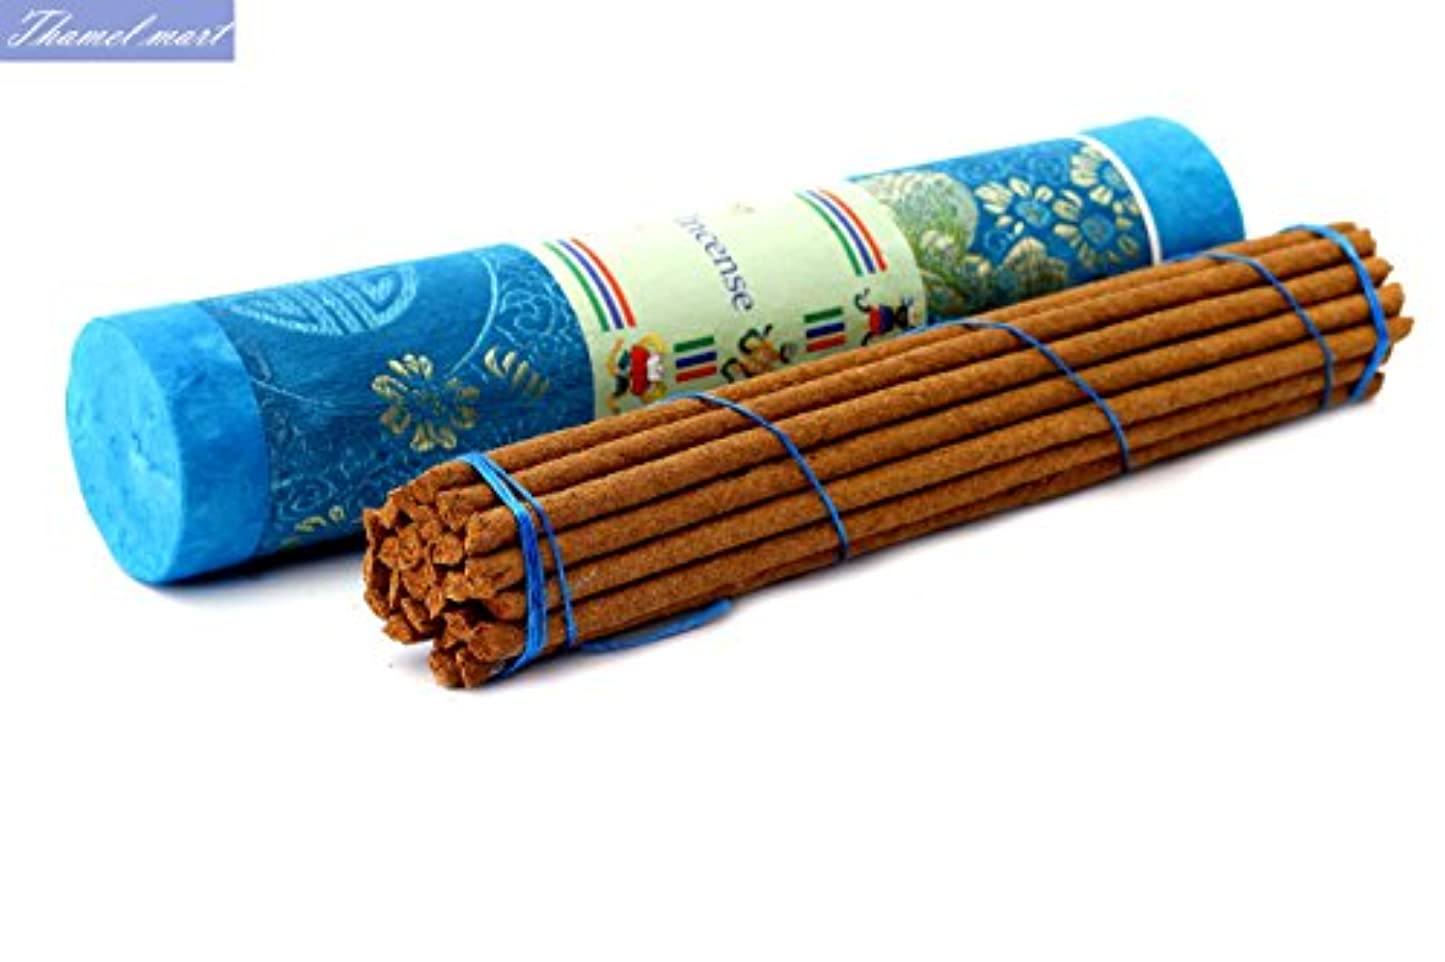 サンダルウッドチベットIncense Sticks – Spiritual & Medicinal Relaxation Potpourrisより – 効果的& Scented Oils